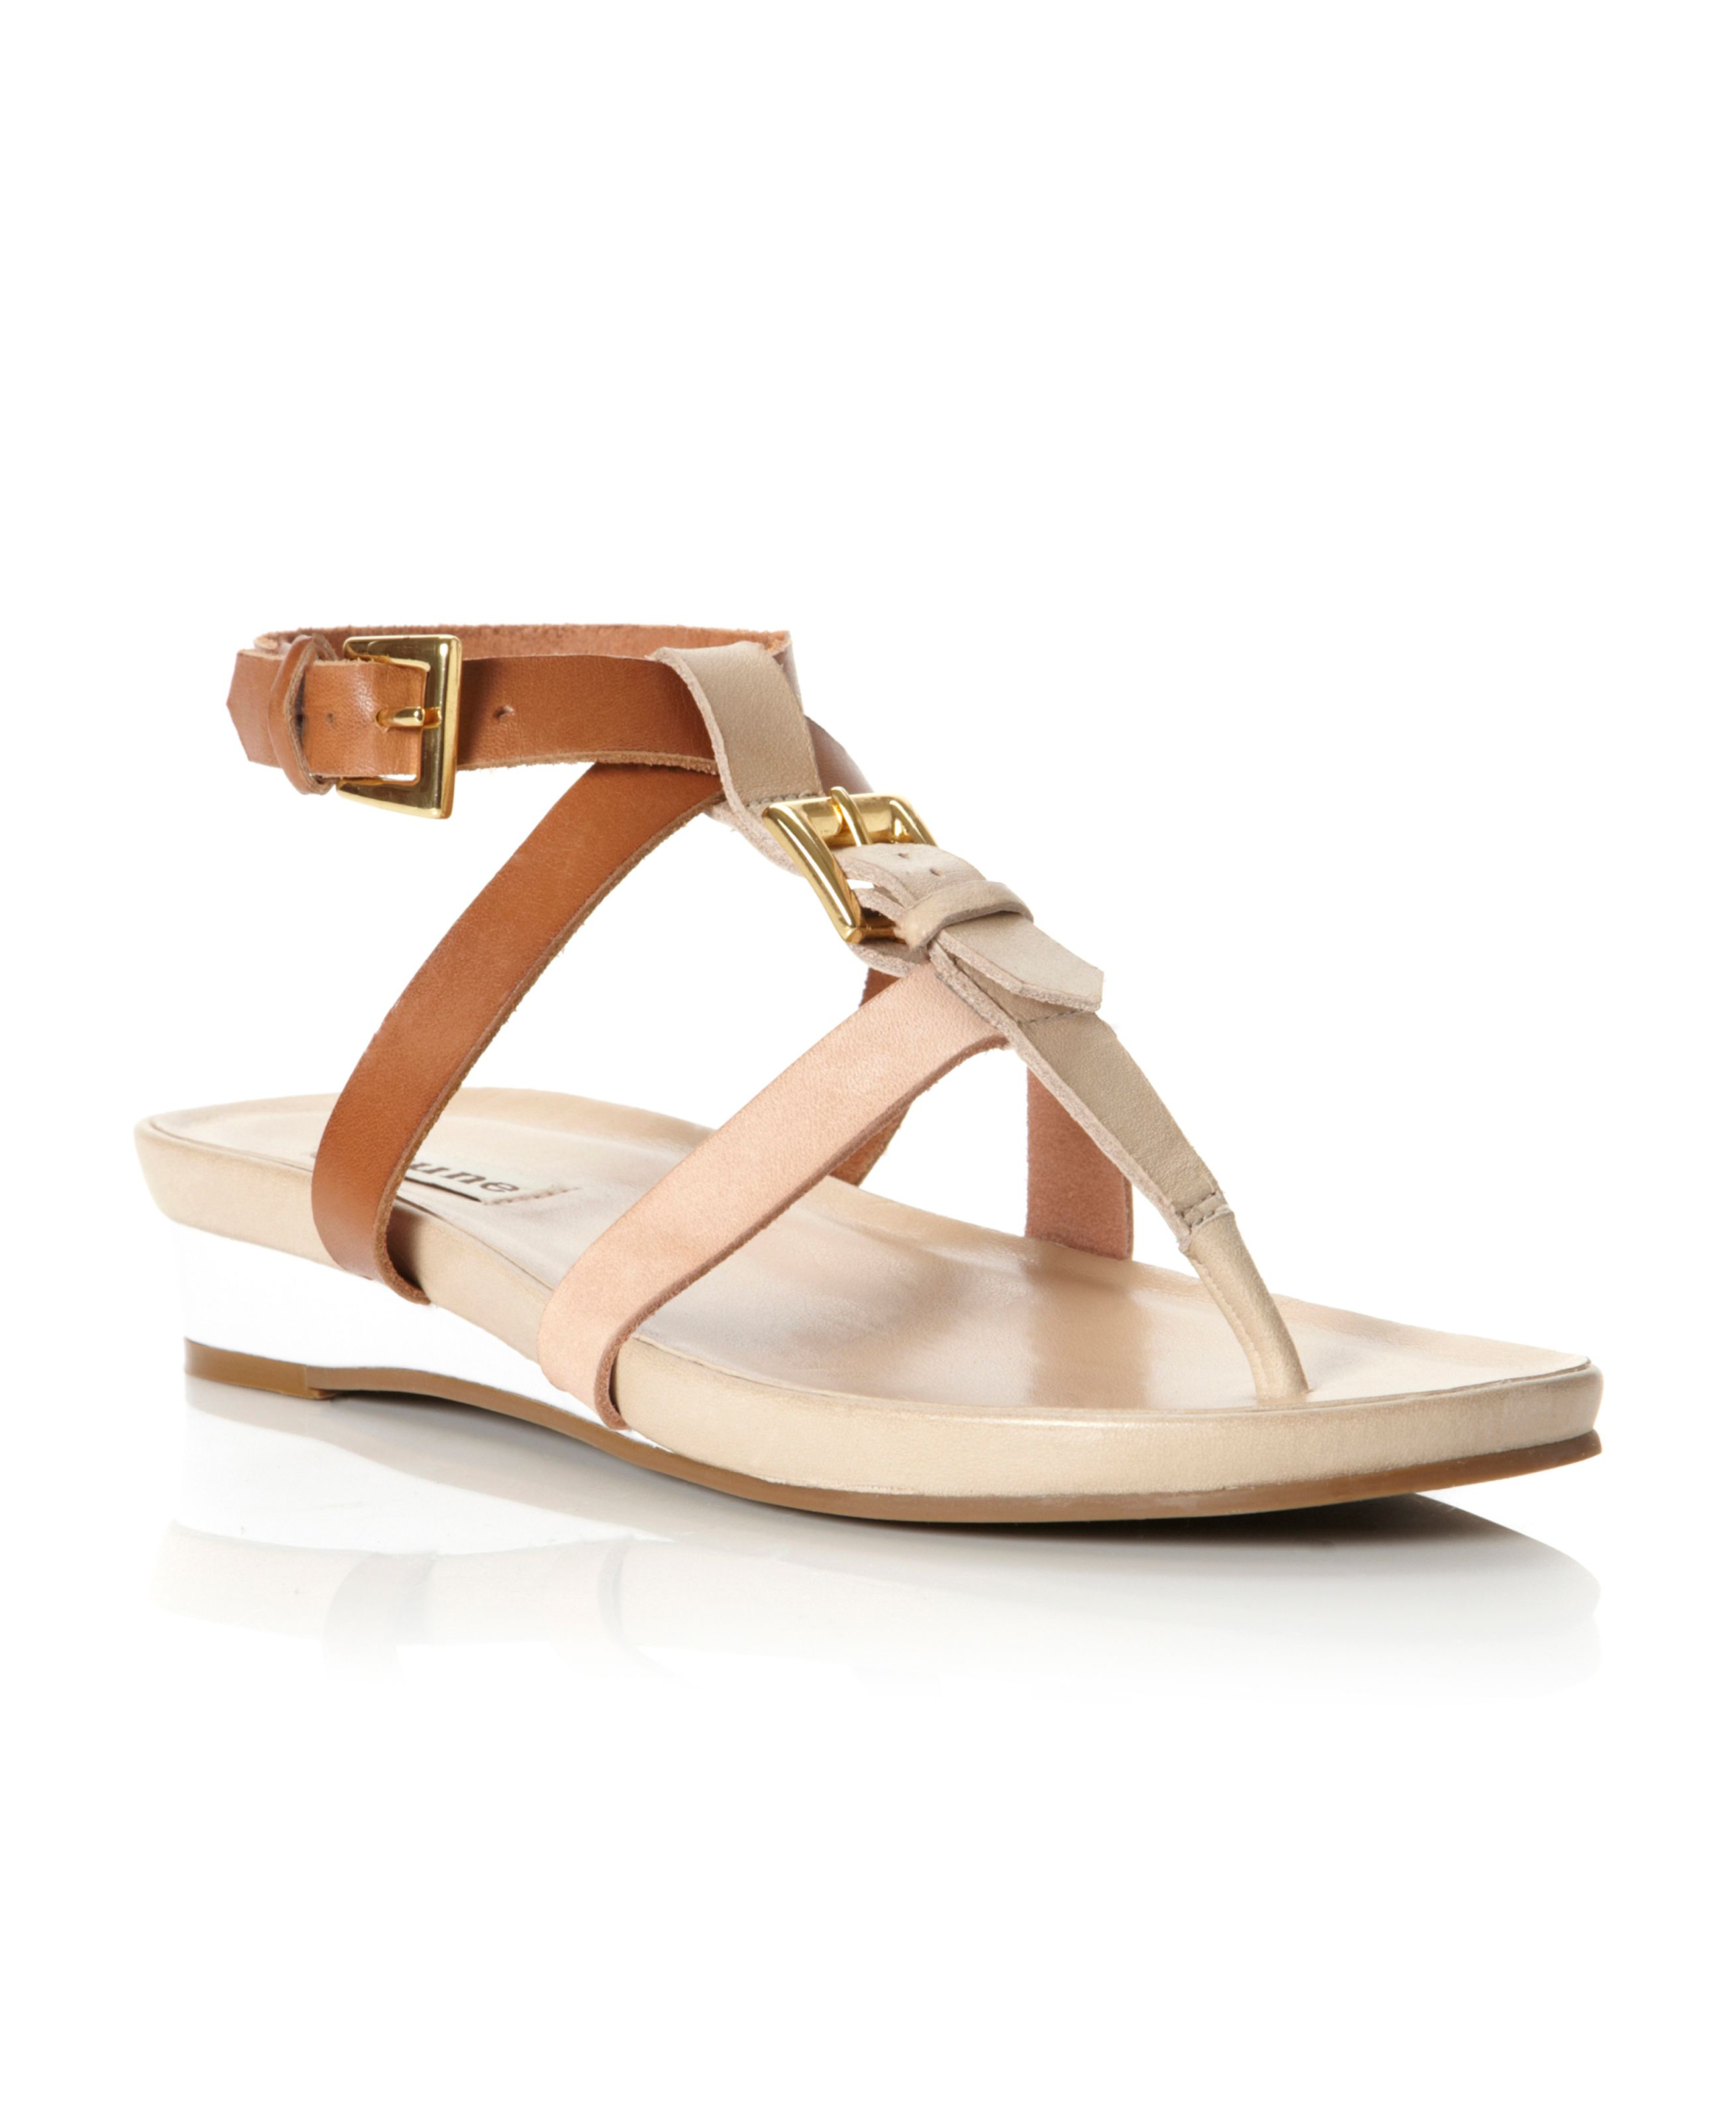 Janella Footbed Buckle Strappy Sandals